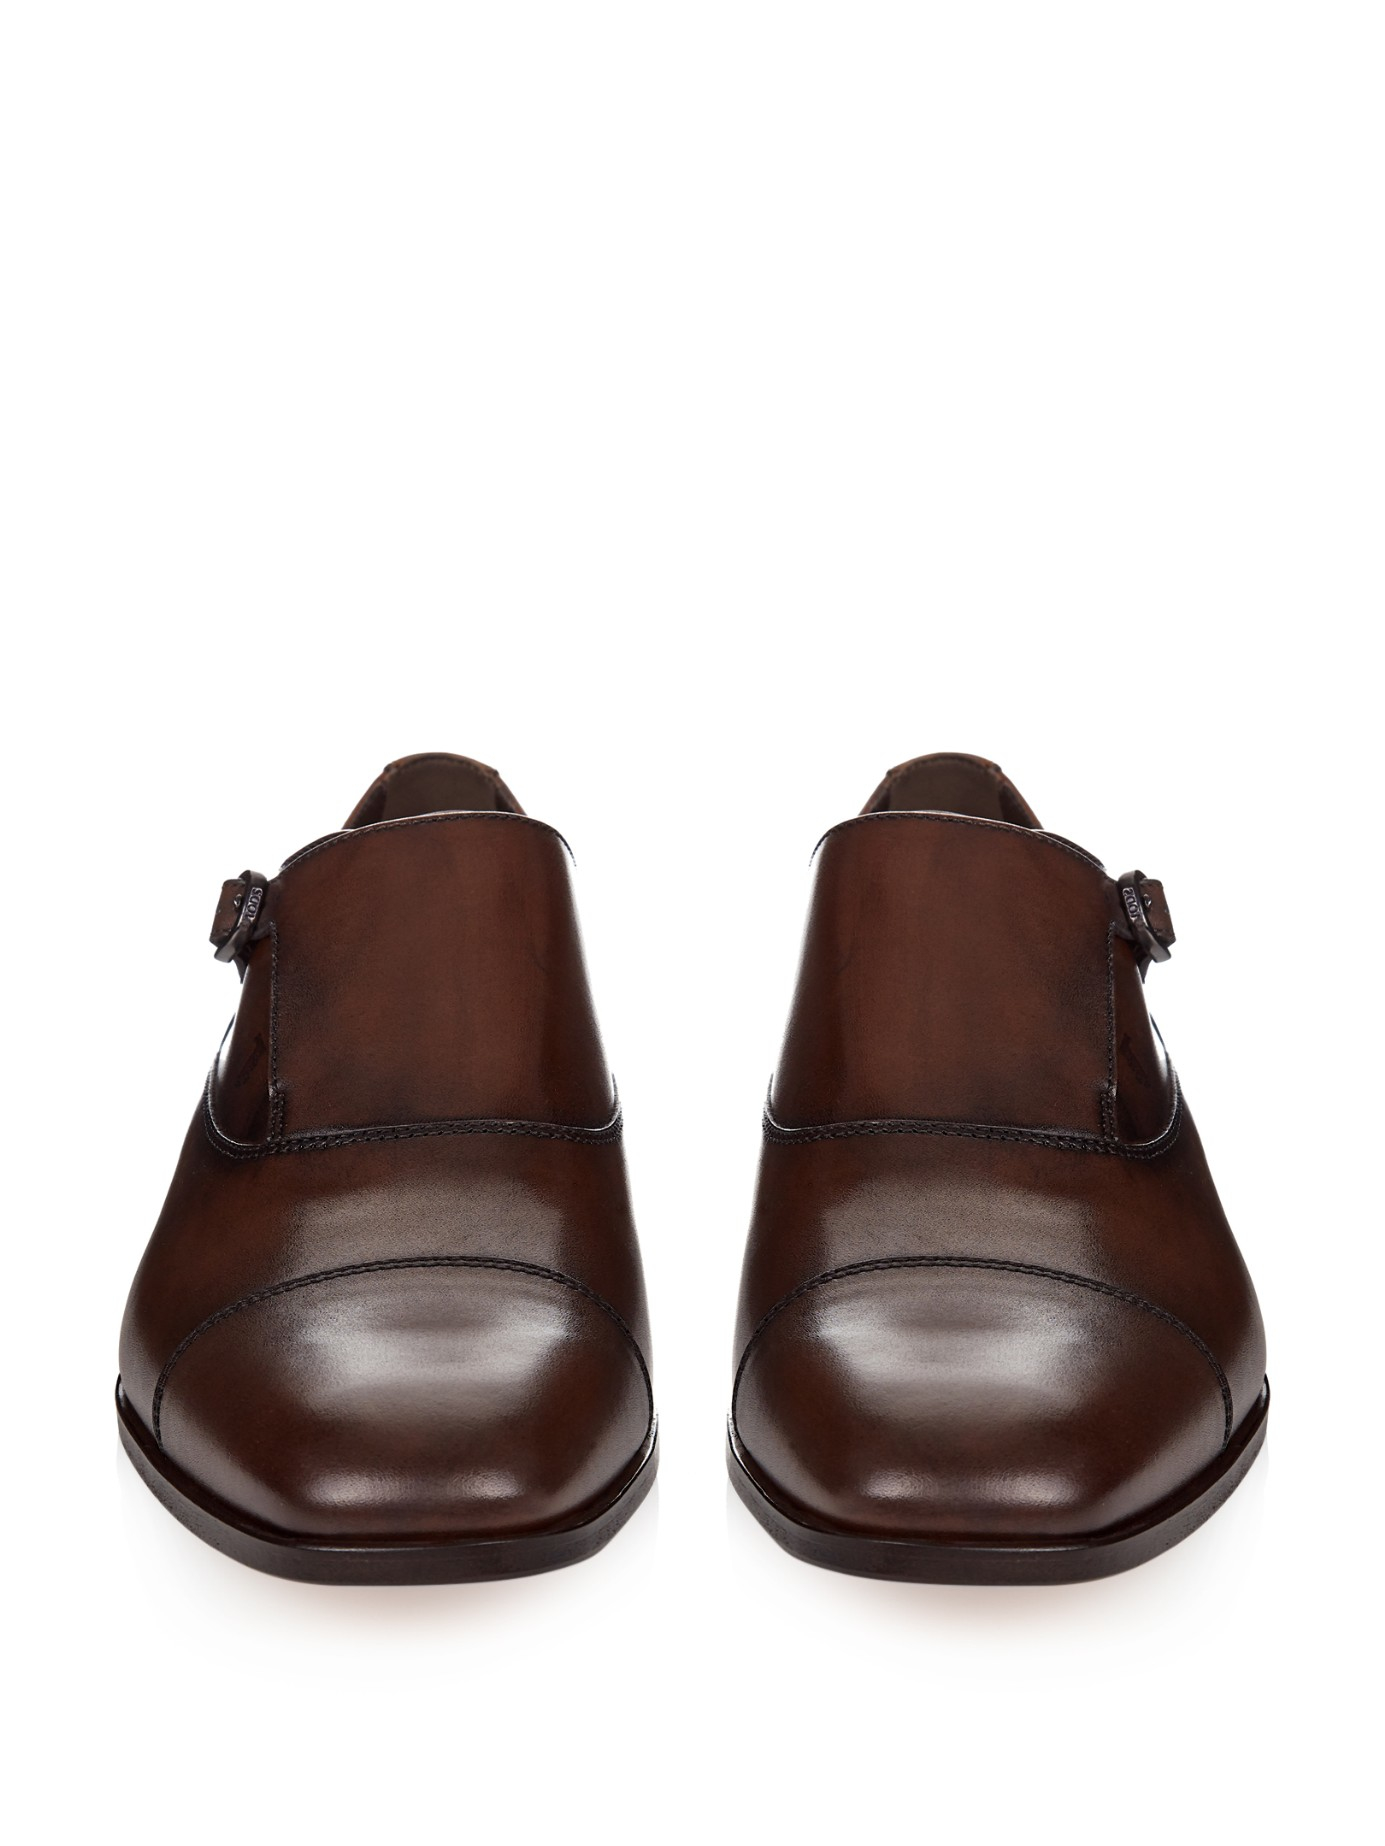 Monk Strap Shoes in Suede Tod's 3SHG9